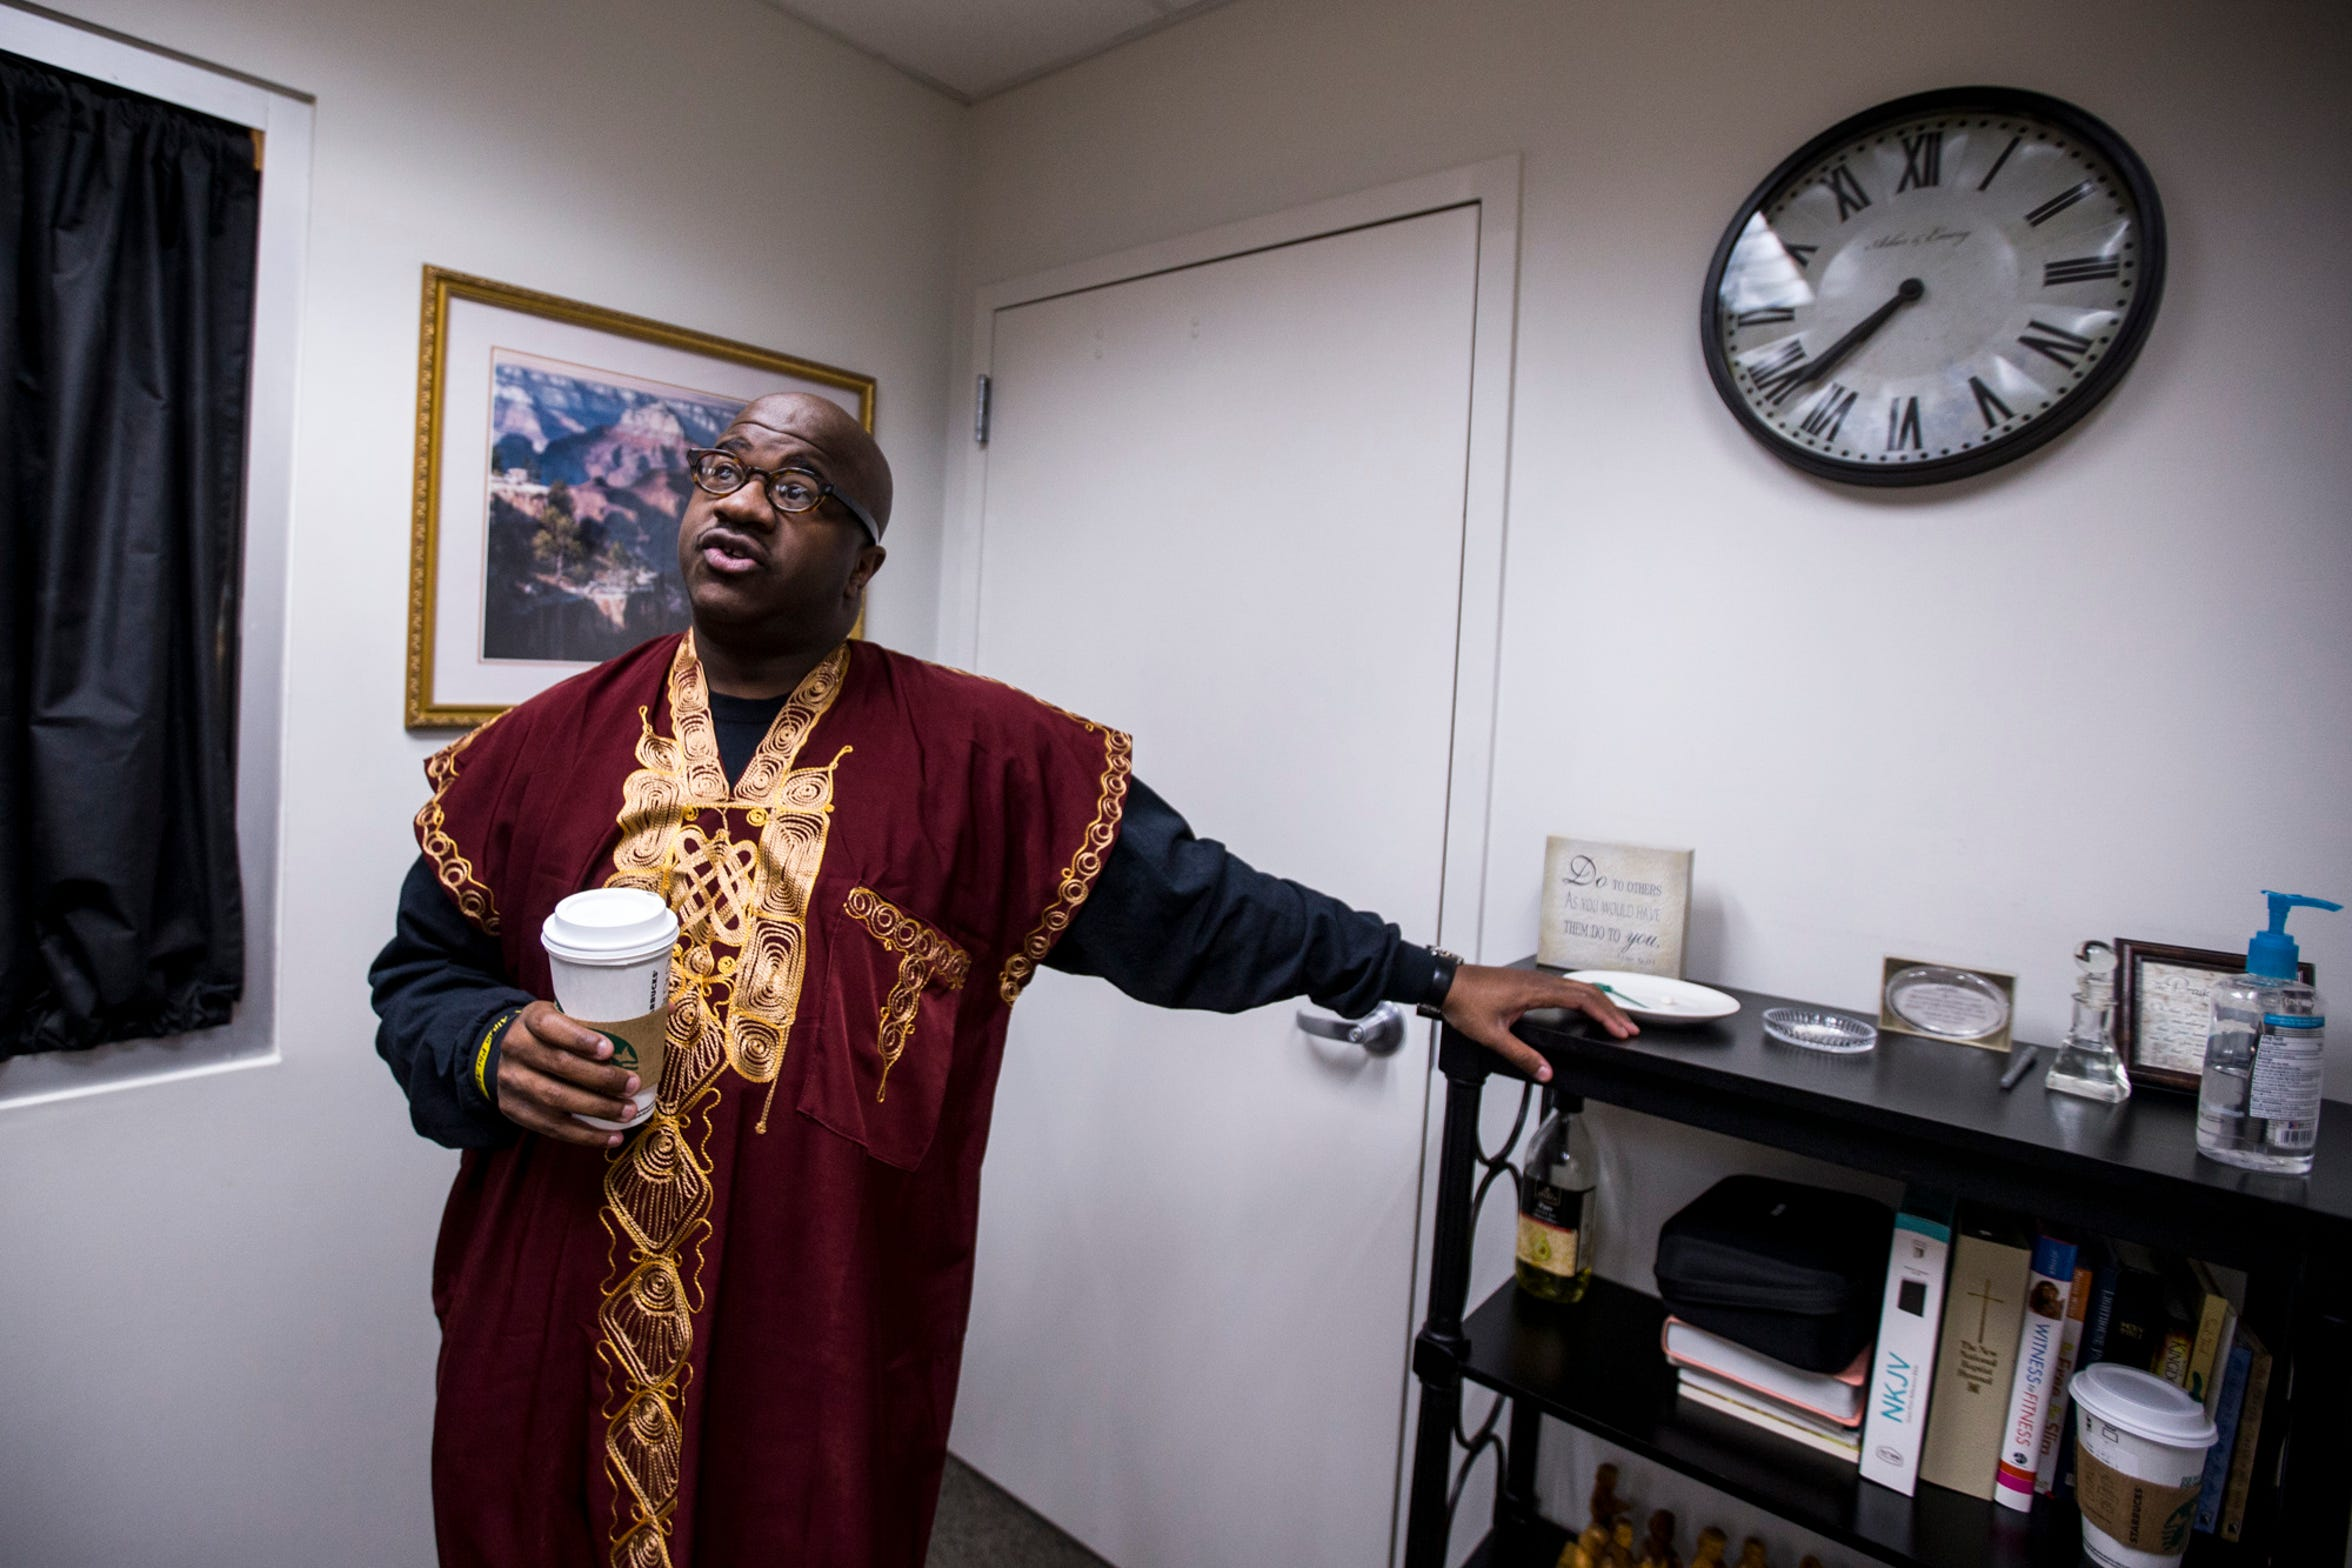 Starbucks in hand, Pastor Terry Mackey prepares for the 7:30 a.m. service at Pilgrim Rest Baptist Church in Phoenix.